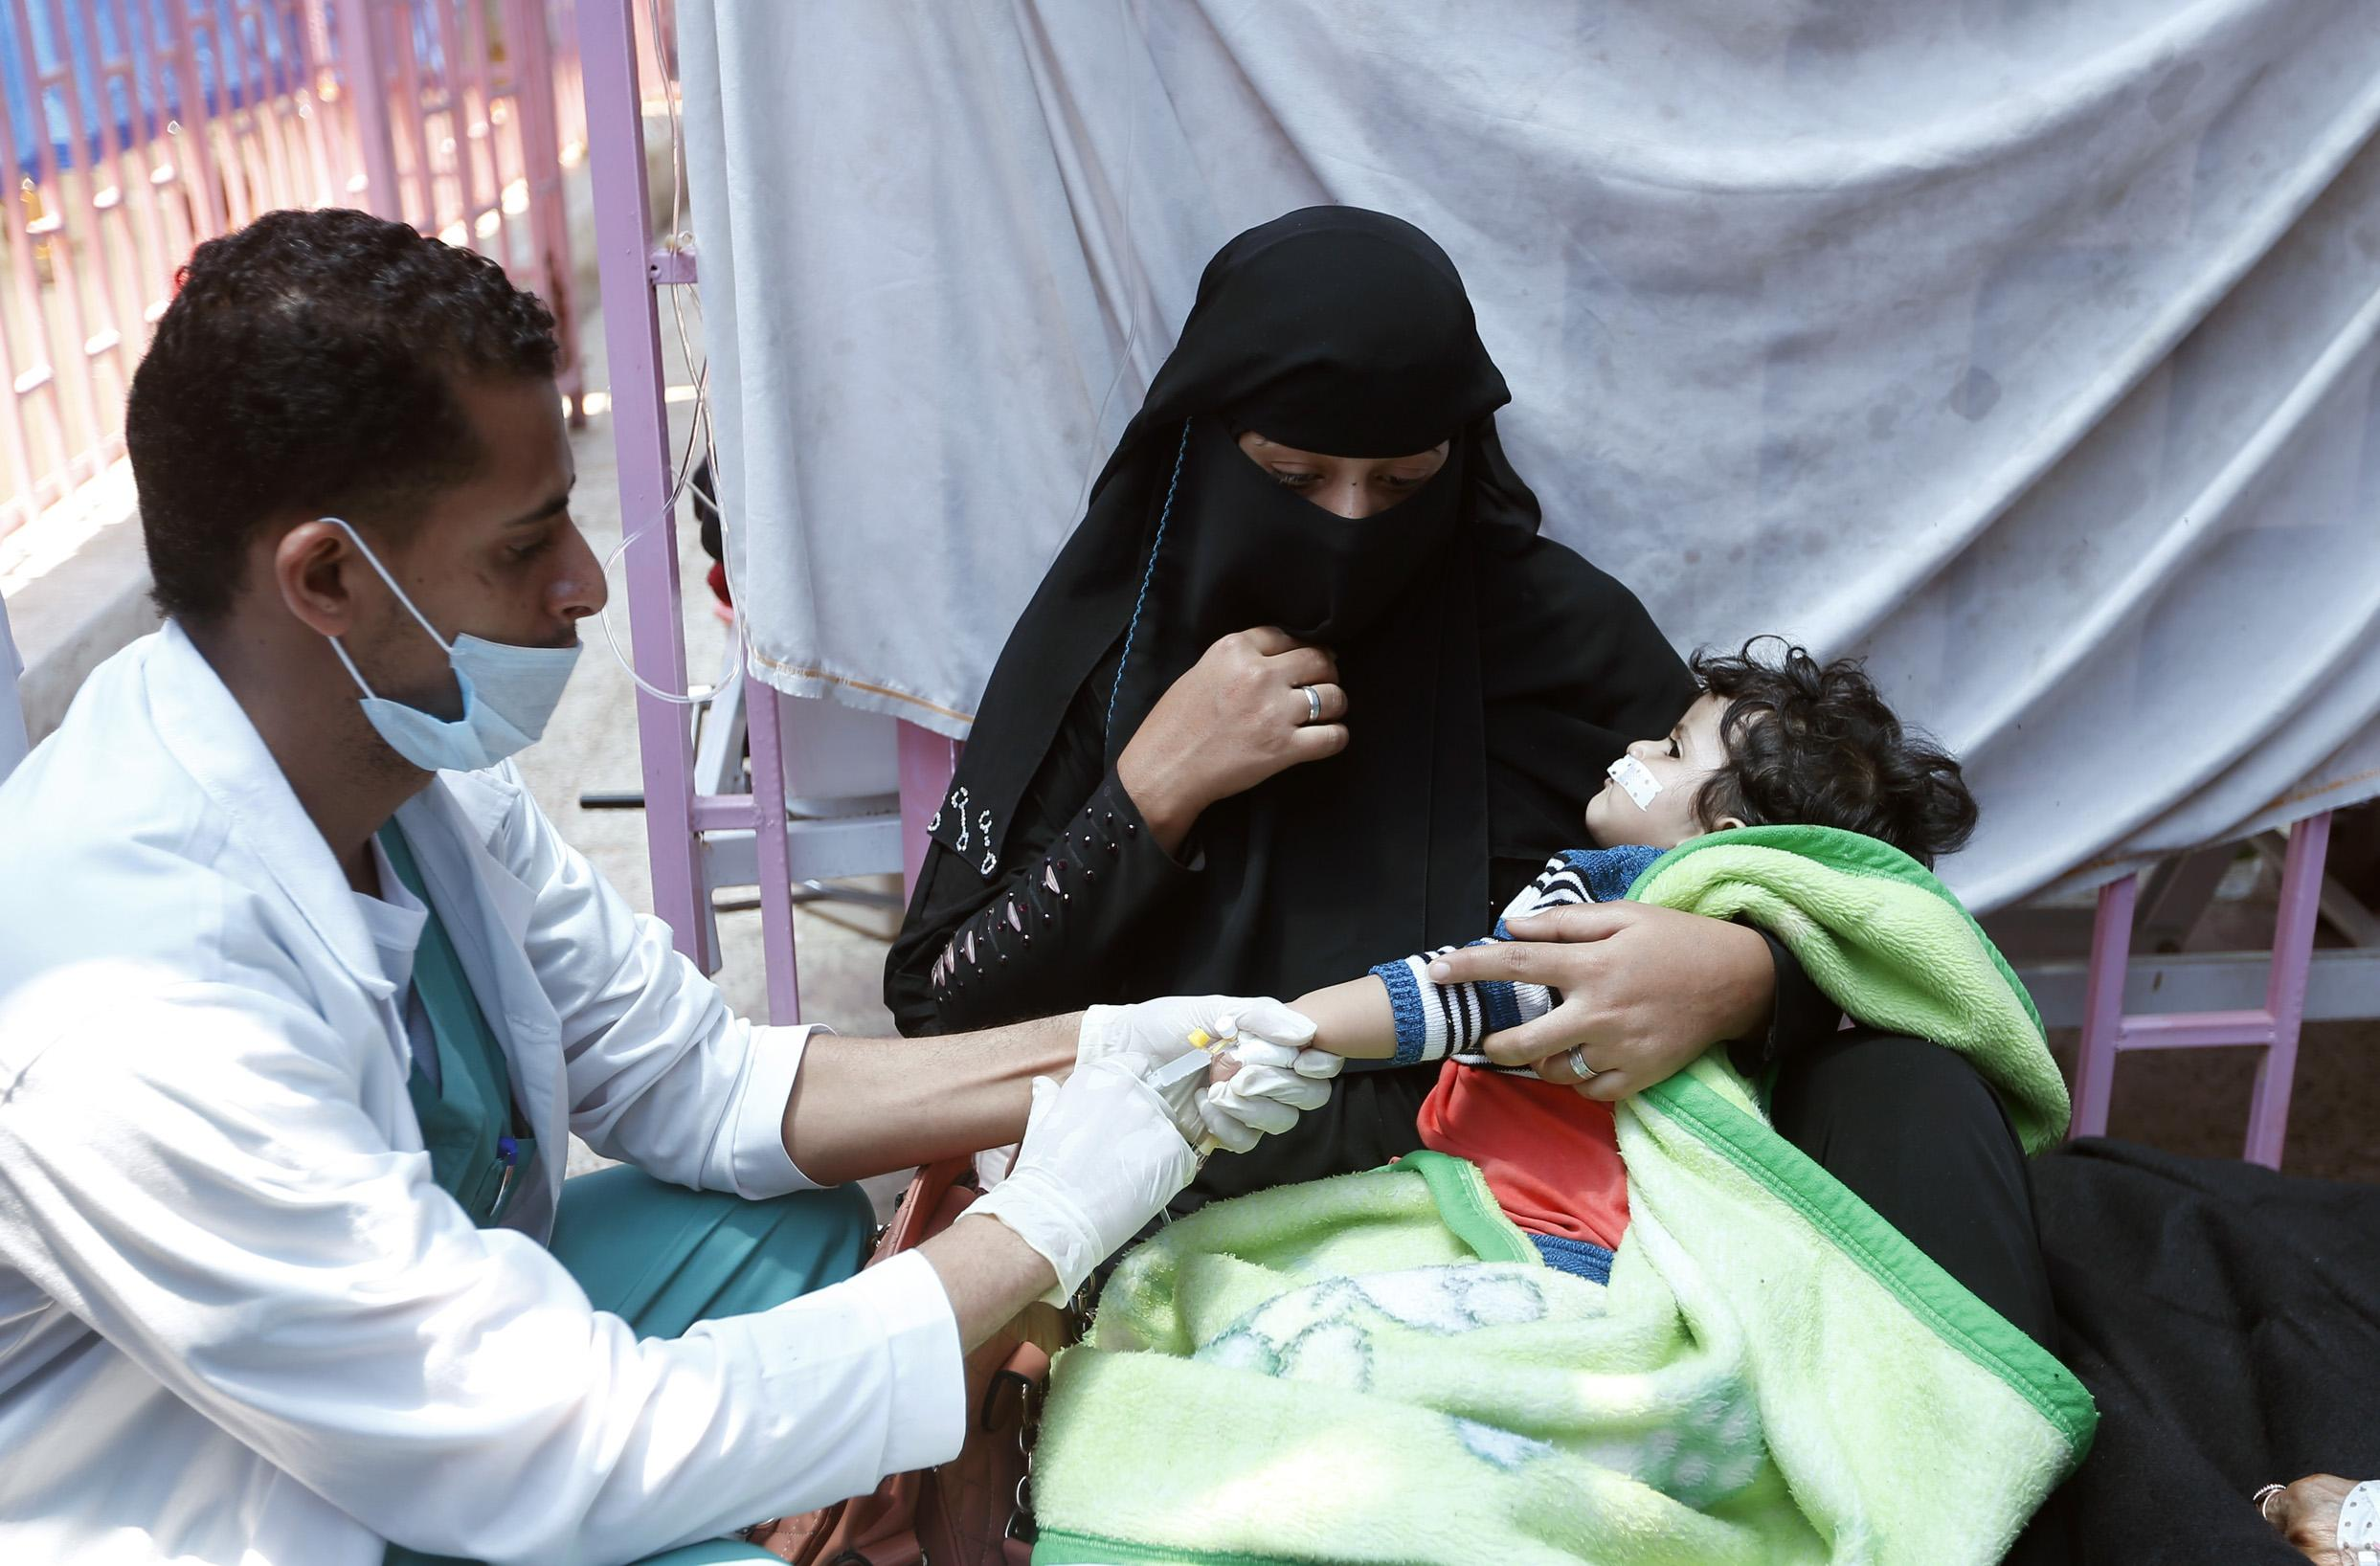 Yemen's cholera epidemic is the biggest in modern history, and it's only getting worse